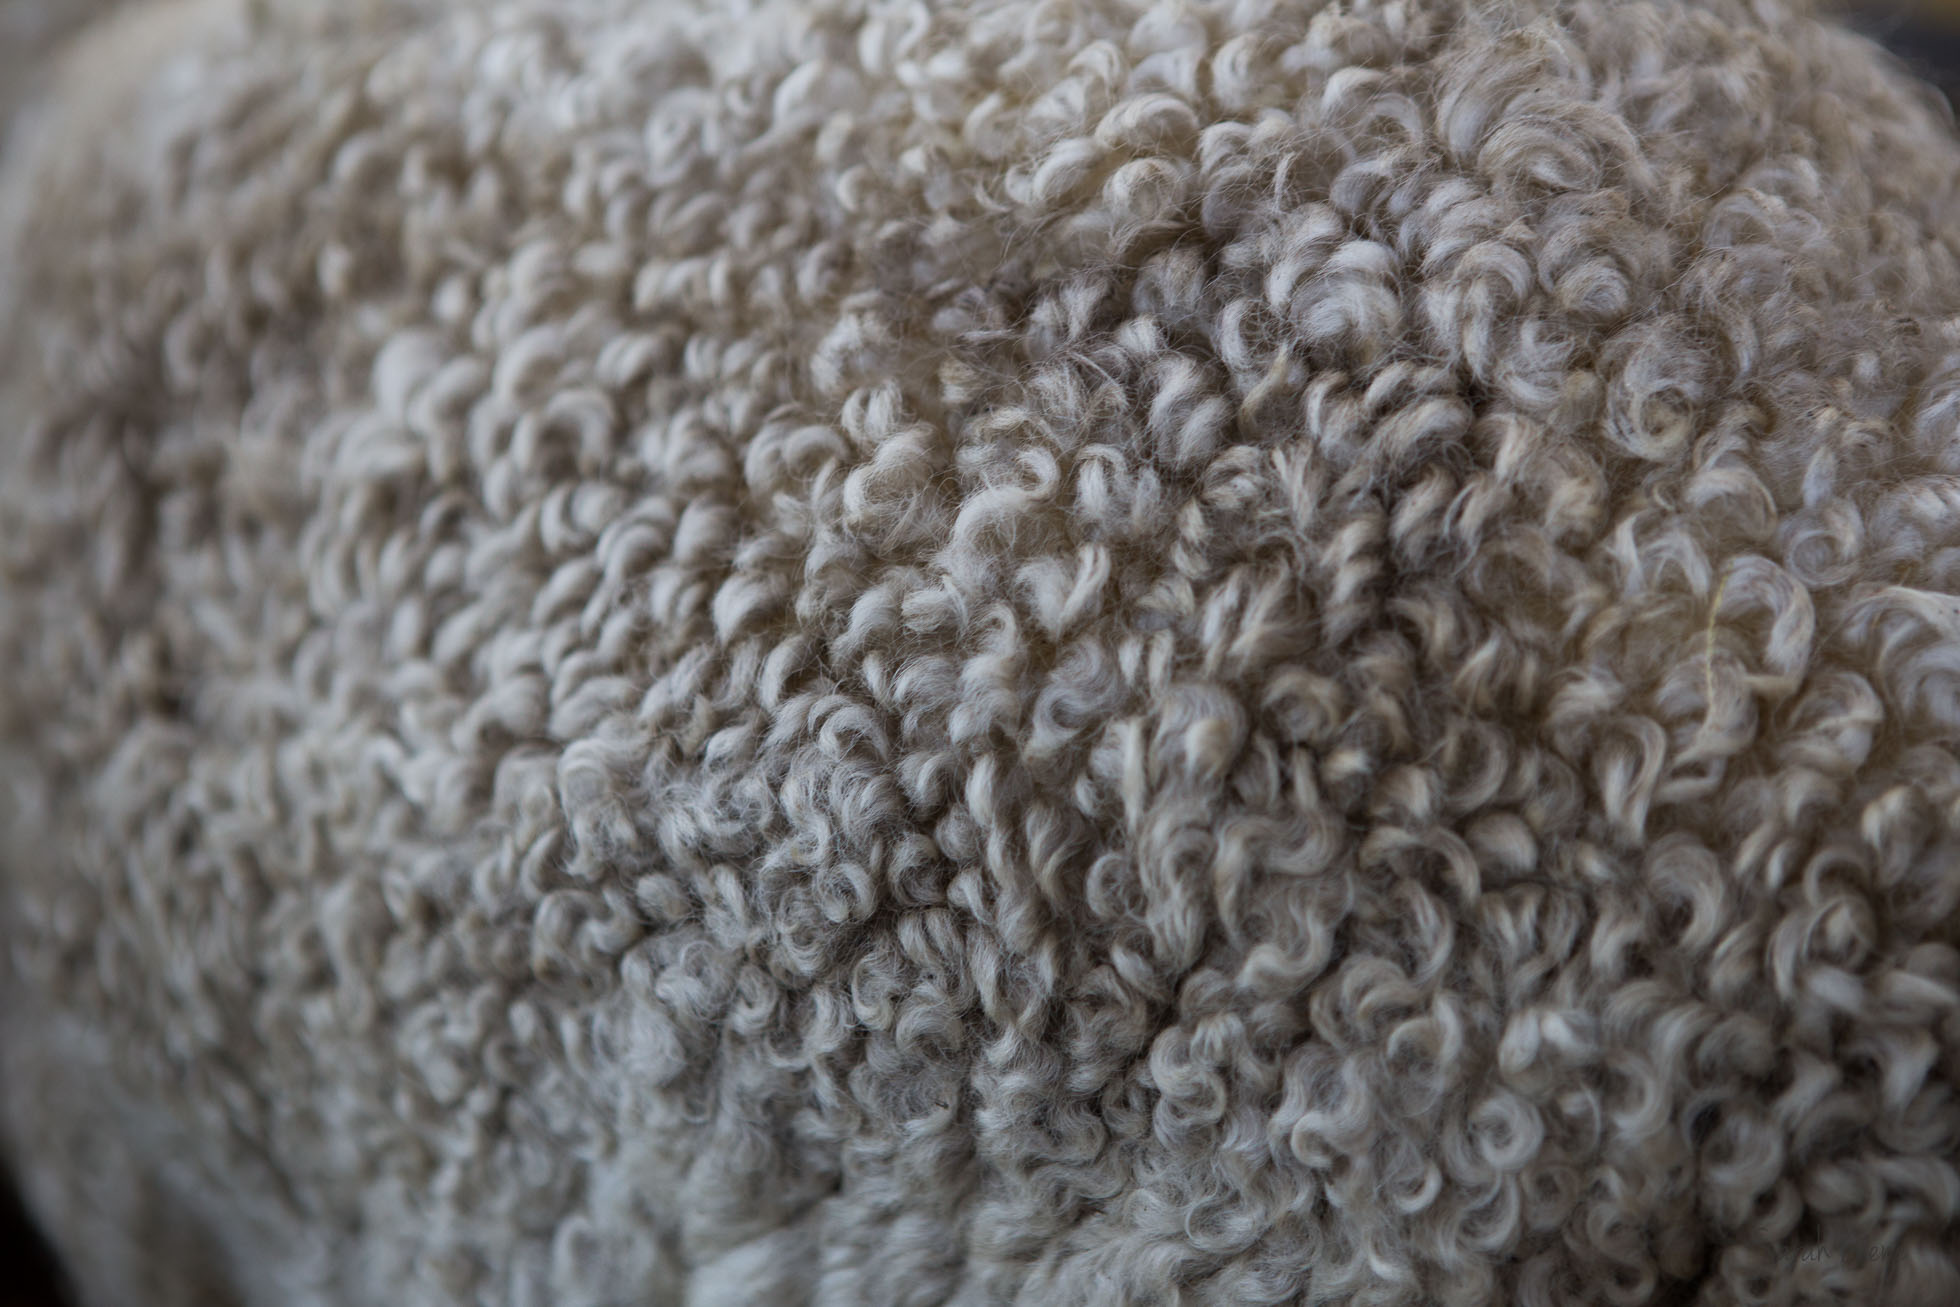 The most beautiful Leicester Longwool sheep